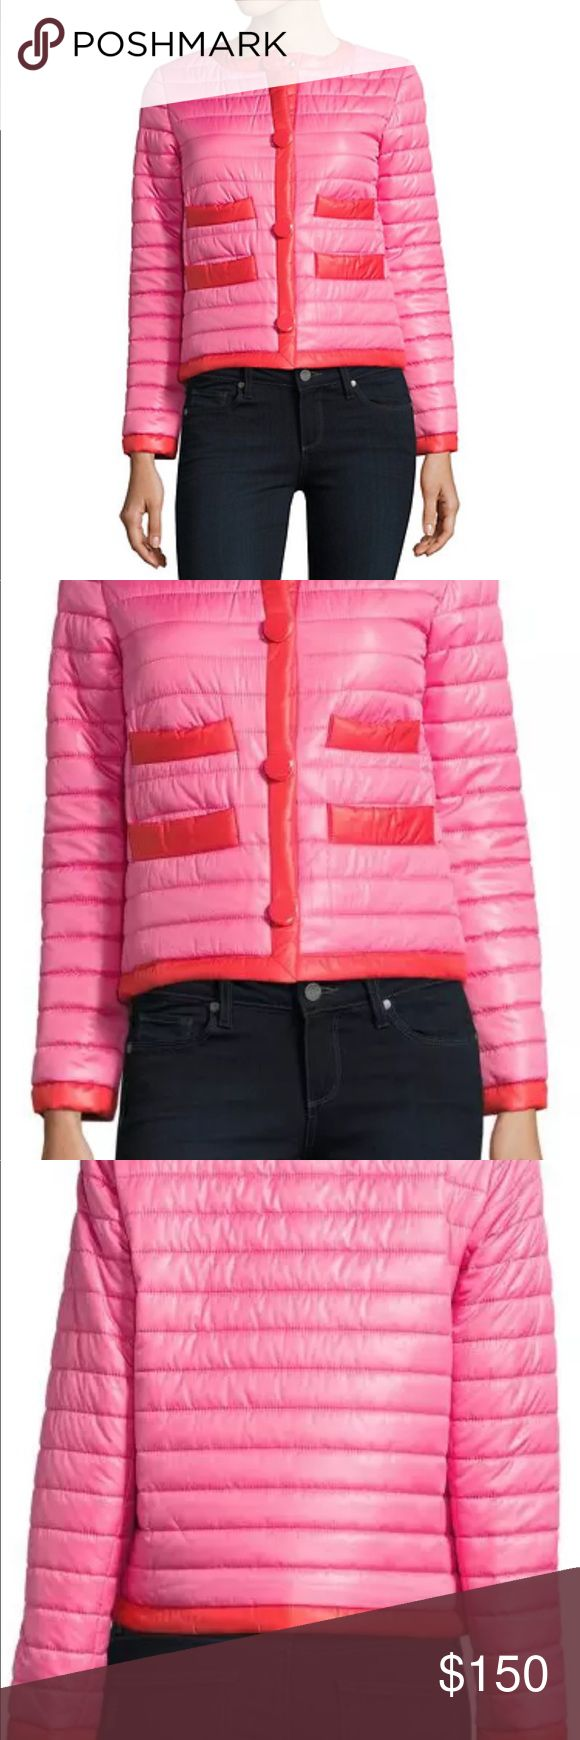 Kate Spade Women's puffer Jacket XL Kate Spade  Contrast-Trimmed Packable Quilted Jacket  Swirl Pink  Crewneck  Long sleeves  Front snap button closure  Four front open pockets  Bow accent at back  Polyester lining  Includes quilted bag for packing  Polyester/spandex  Machine wash  Imported Kate Spade Jackets & Coats Puffers